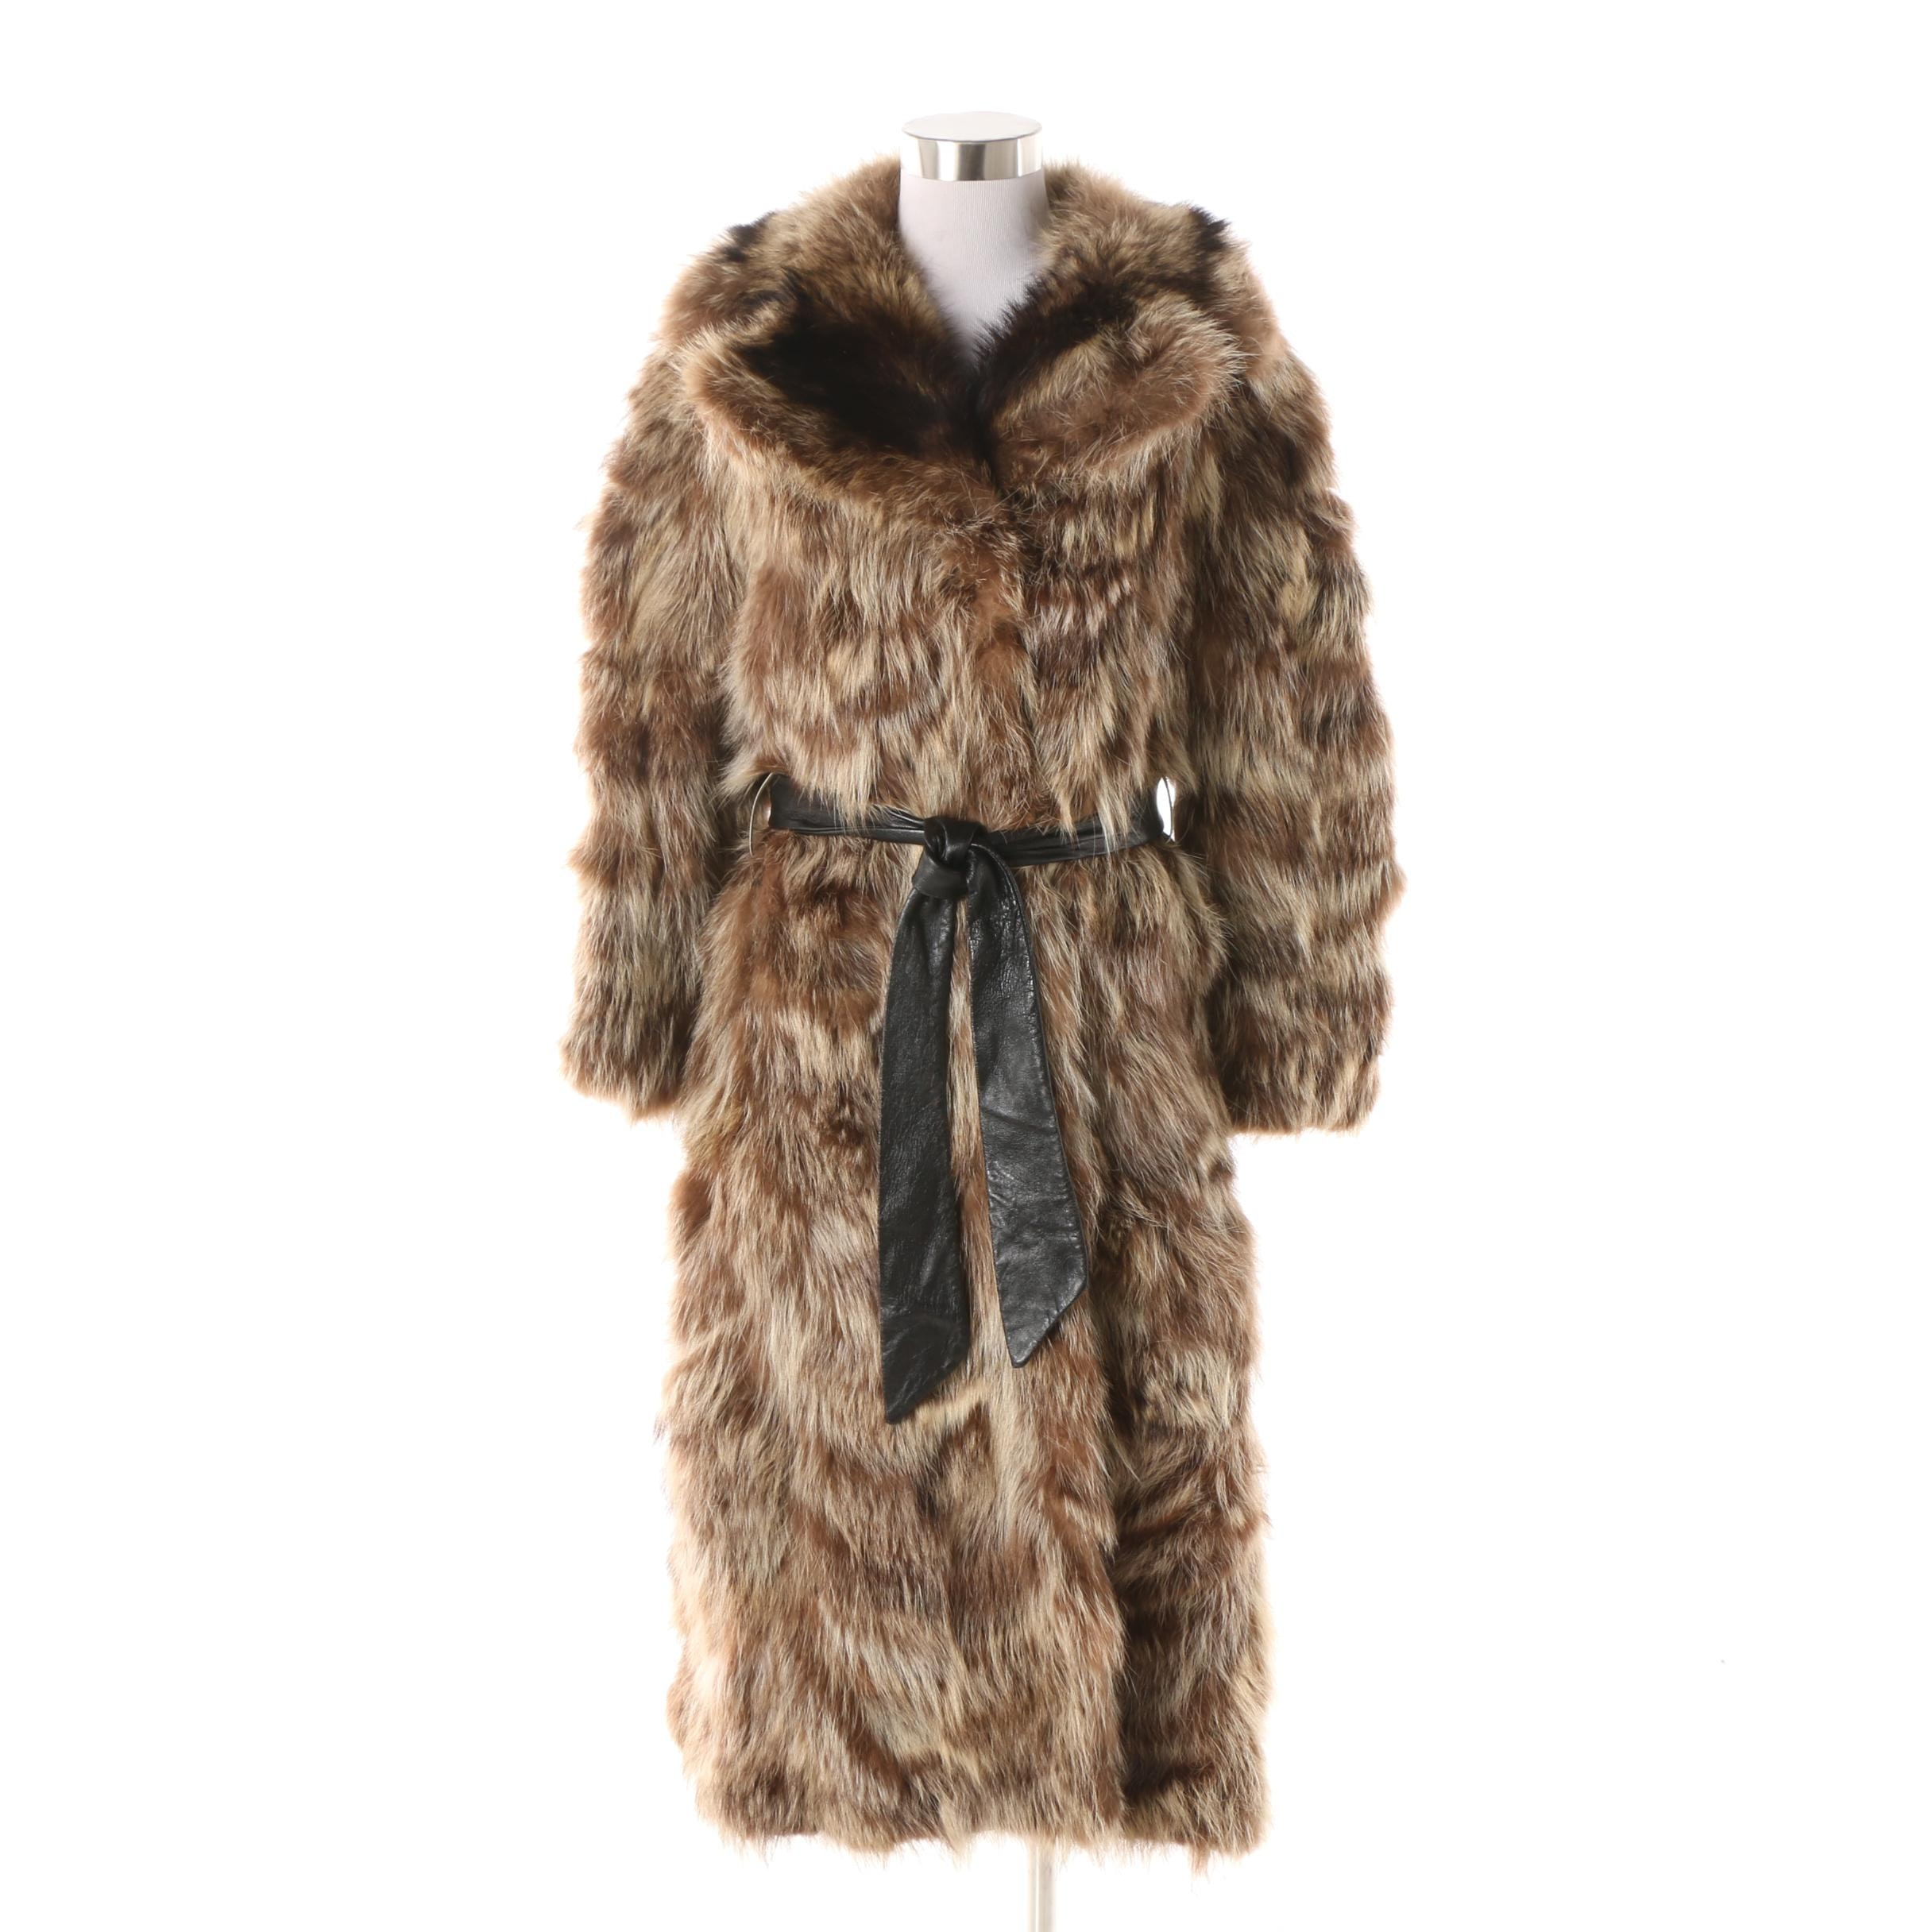 1960s Oleg Cassini for Javurek Furs Tanuki Fur Coat